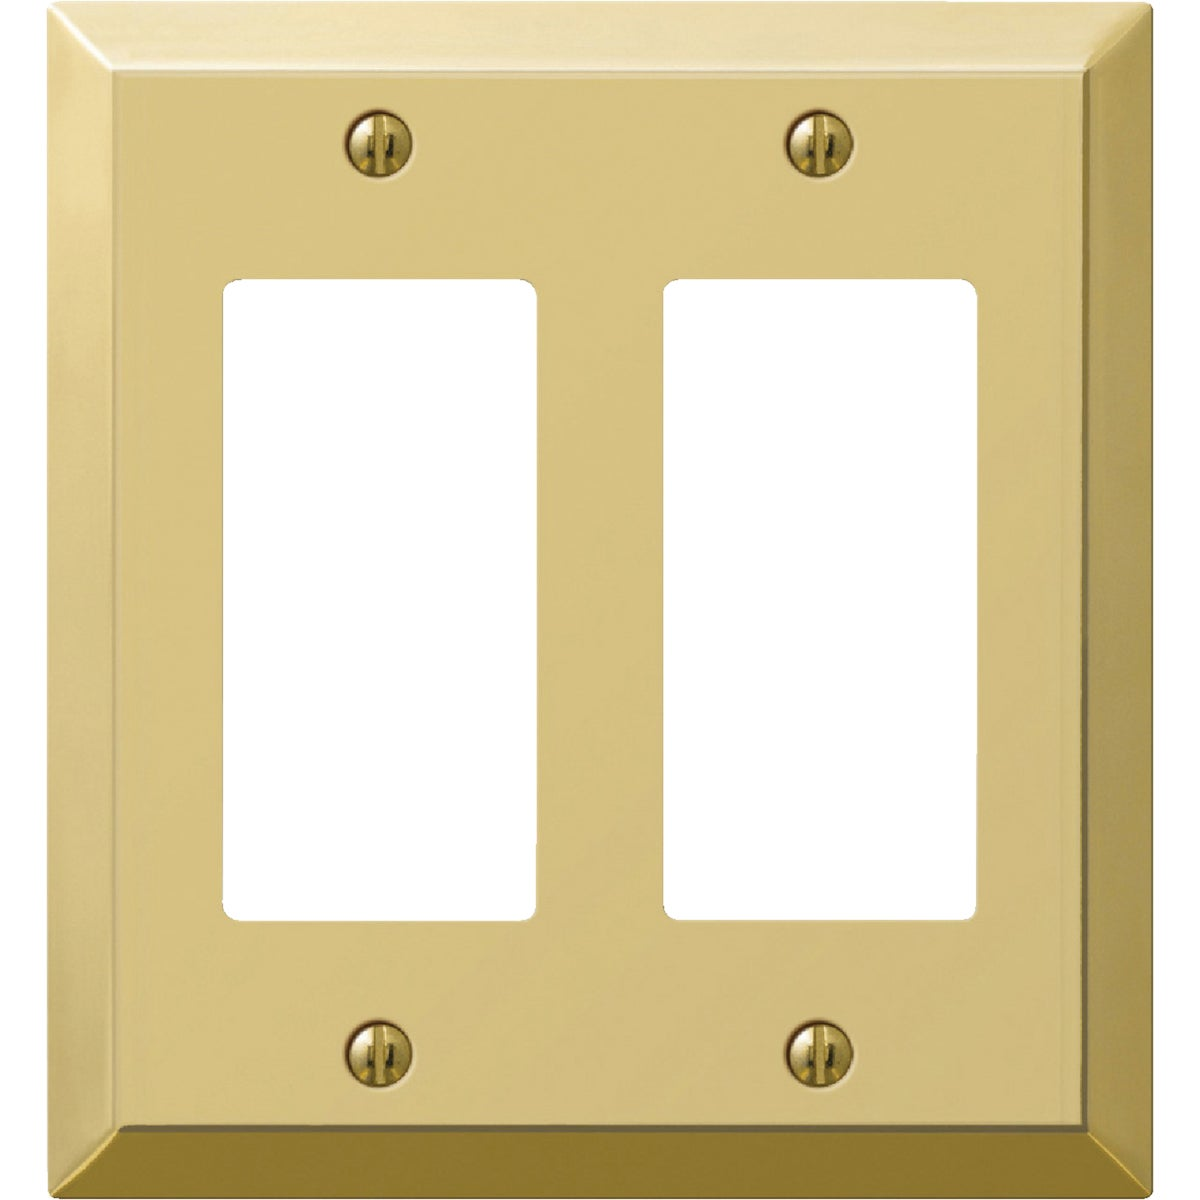 BRS 2-GFI WALL PLATE - 9BS127 by Jackson Deerfield Mf